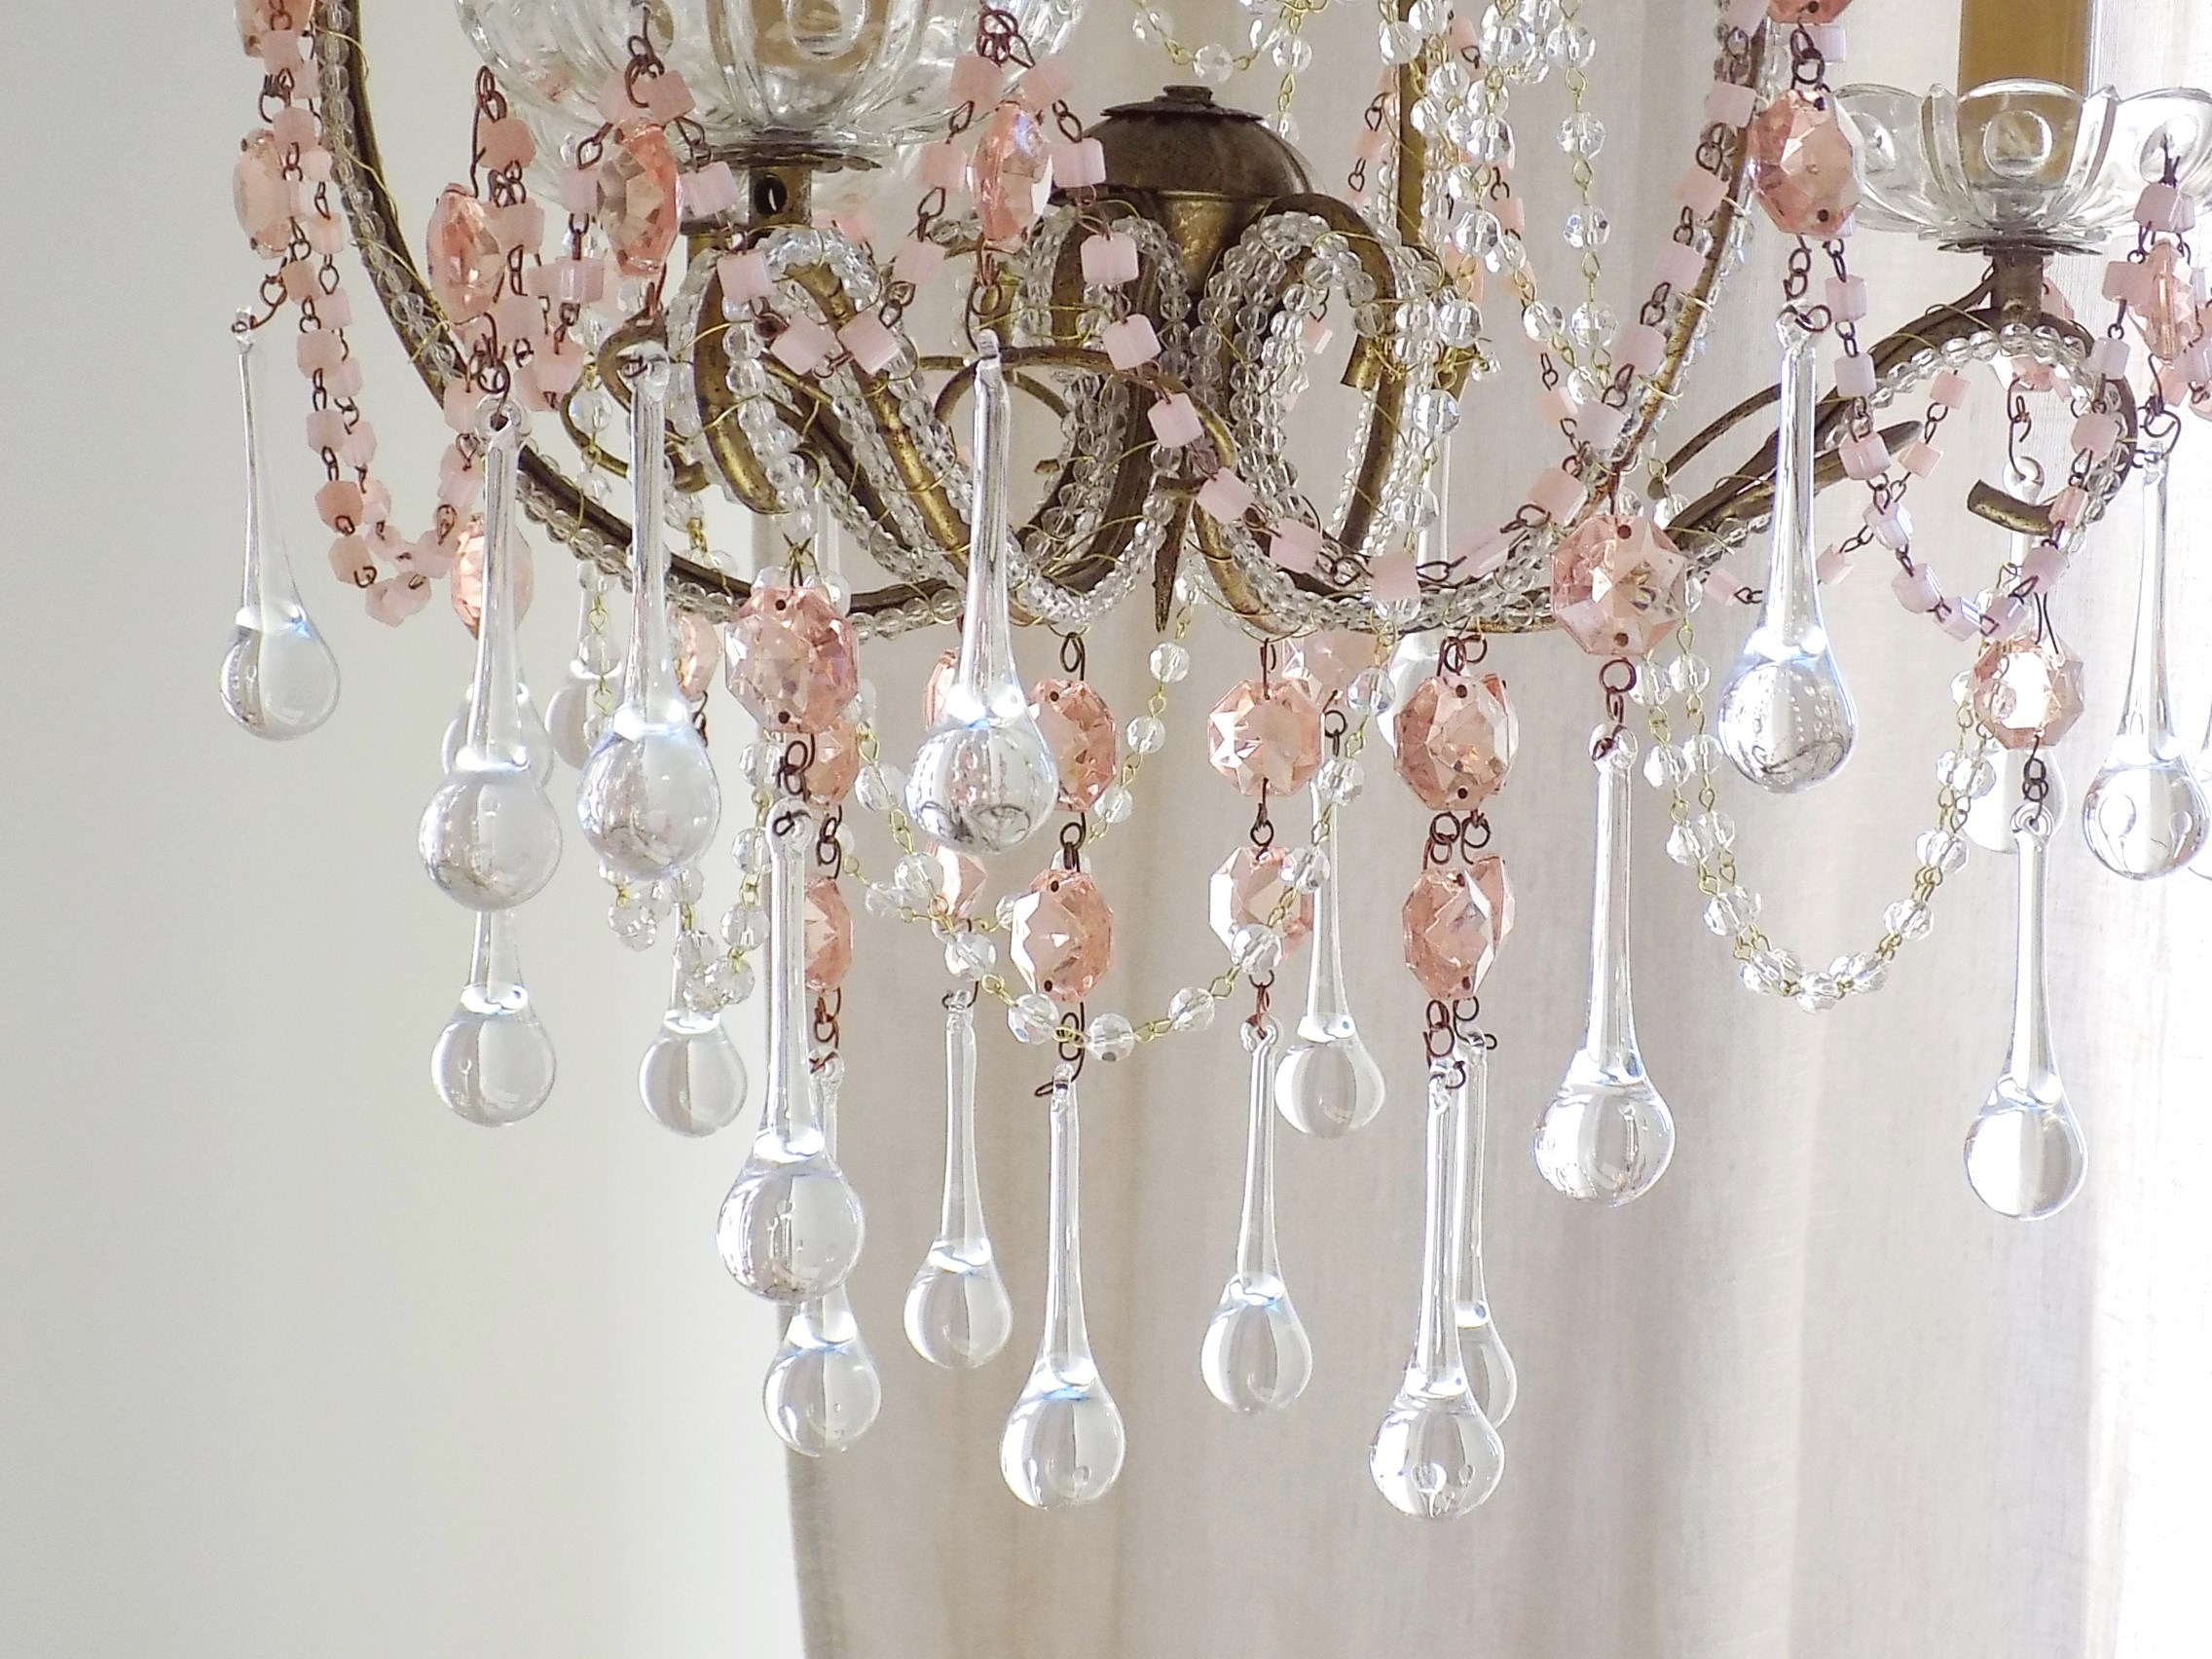 Venetian vintage macaroni beads crystal chandelier lorella dia - Chandelier glass beads ...